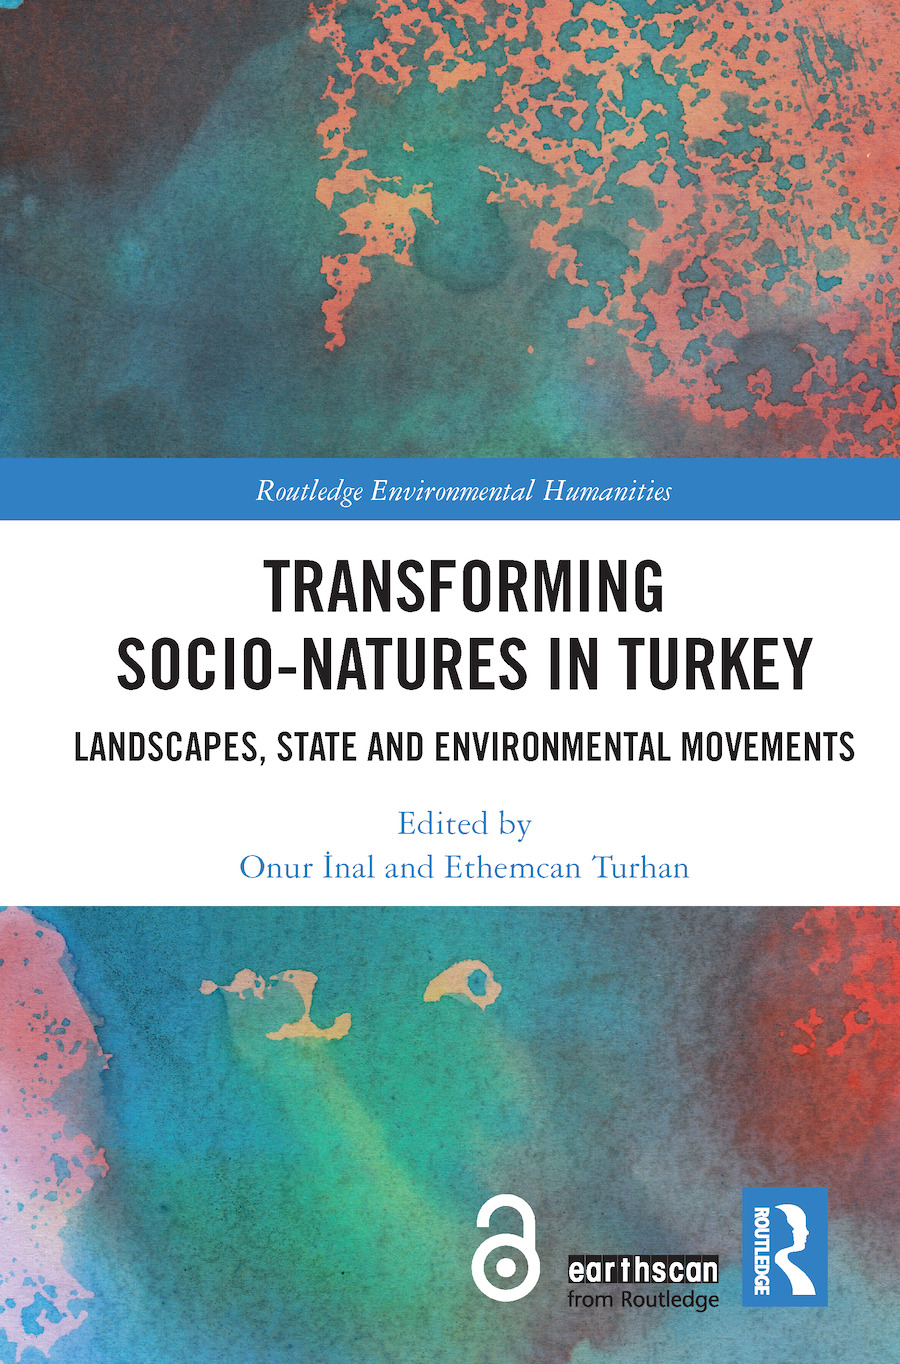 Transforming Socio-Natures in Turkey: Landscapes, State and Environmental Movements book cover